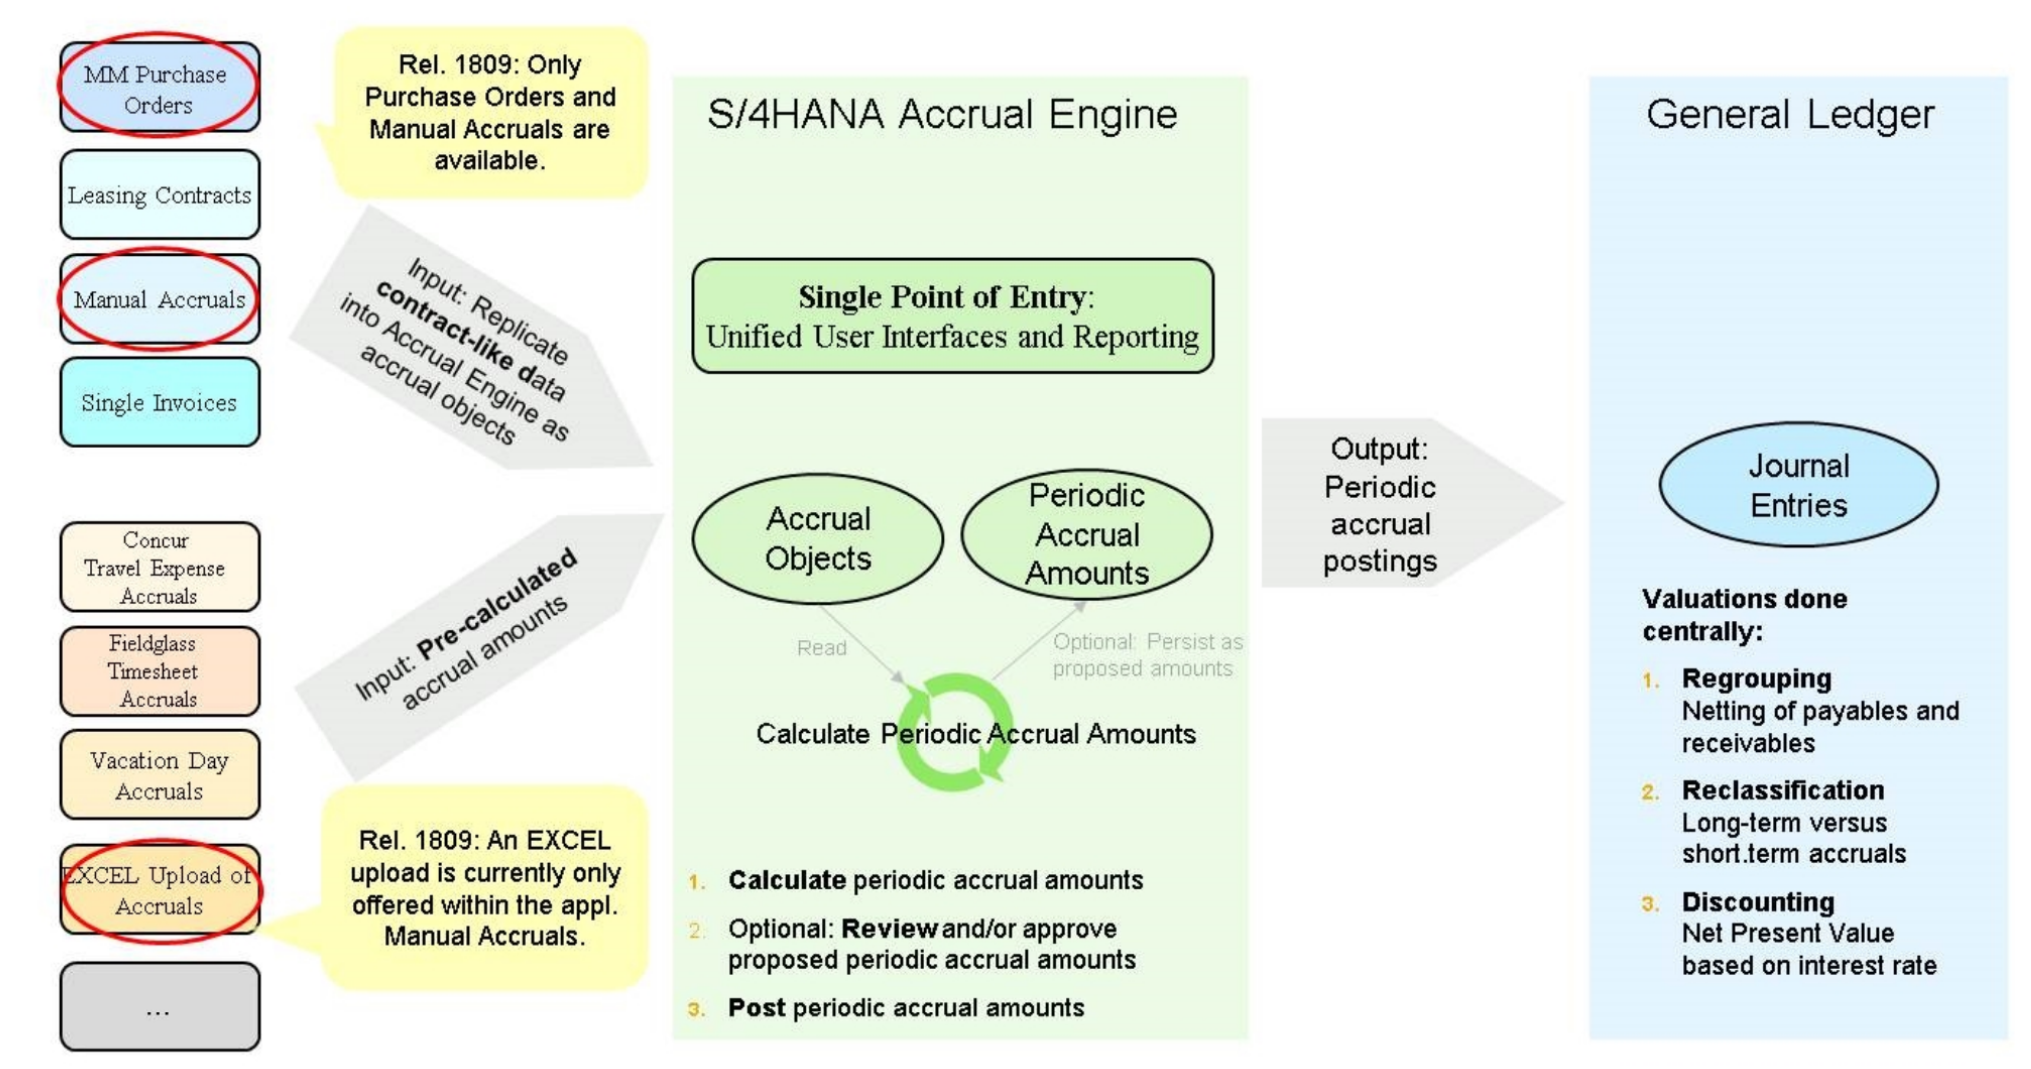 Accrual Management New features